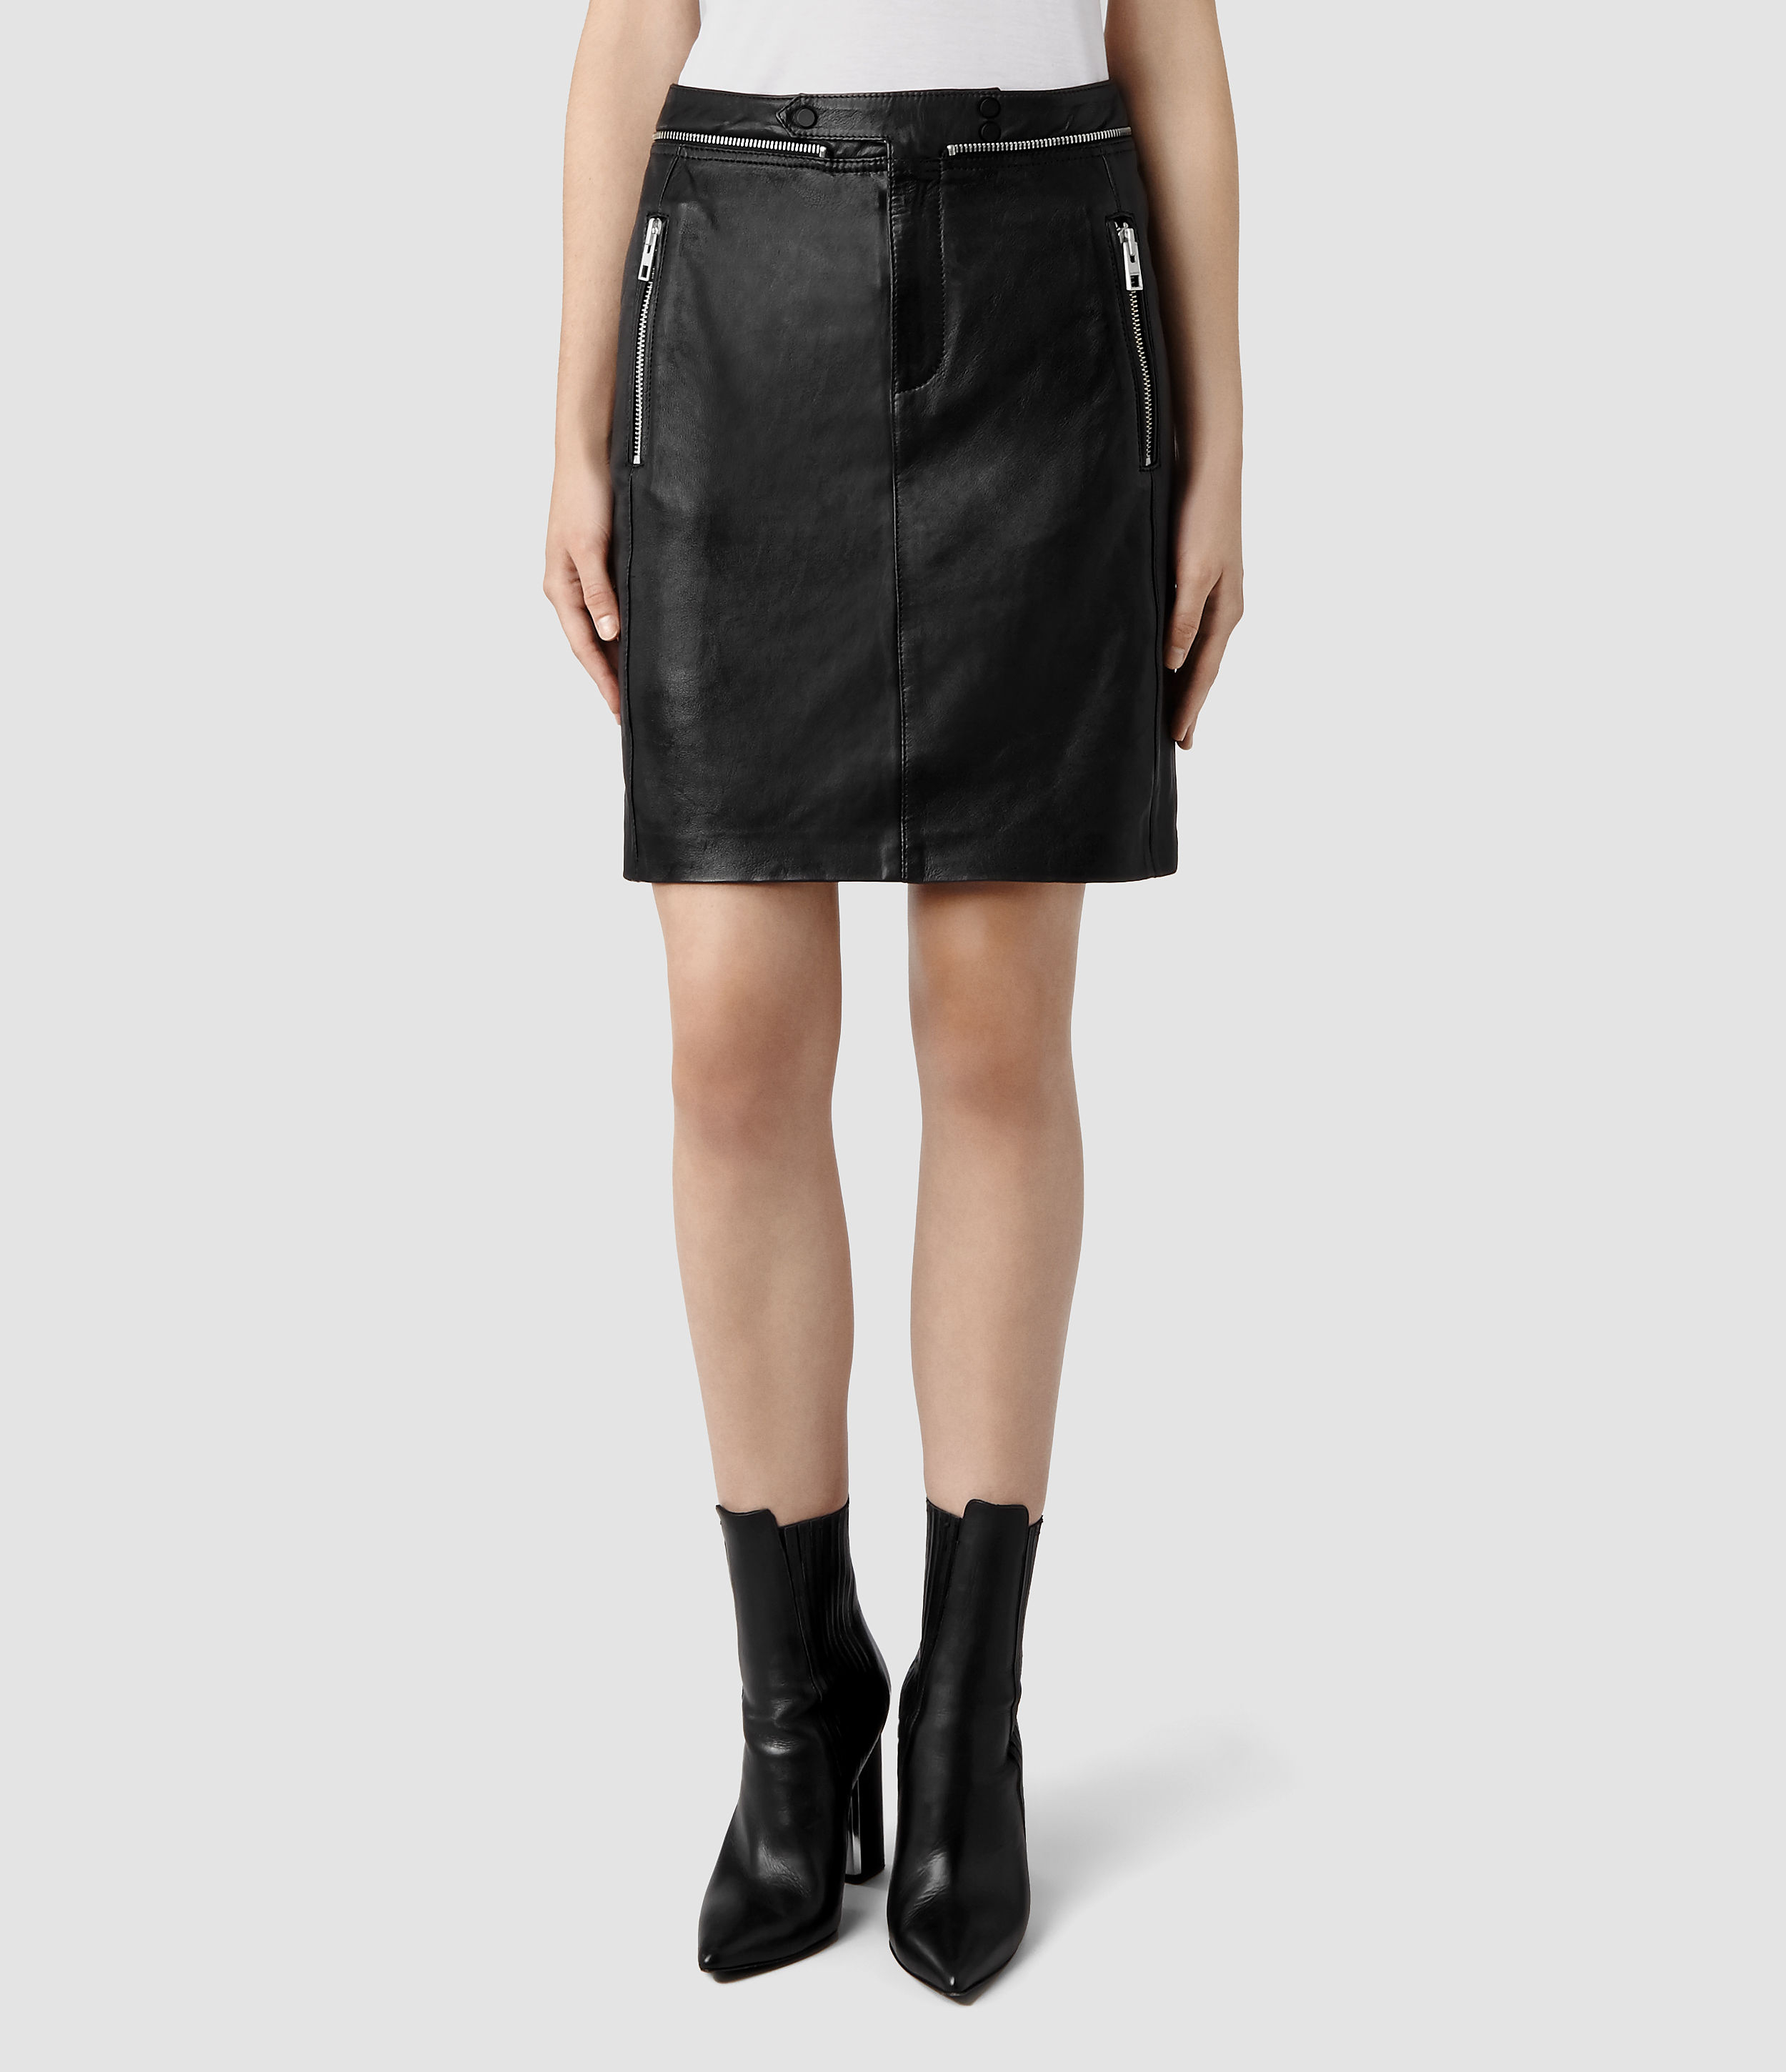 allsaints ryley leather pencil skirt in black lyst